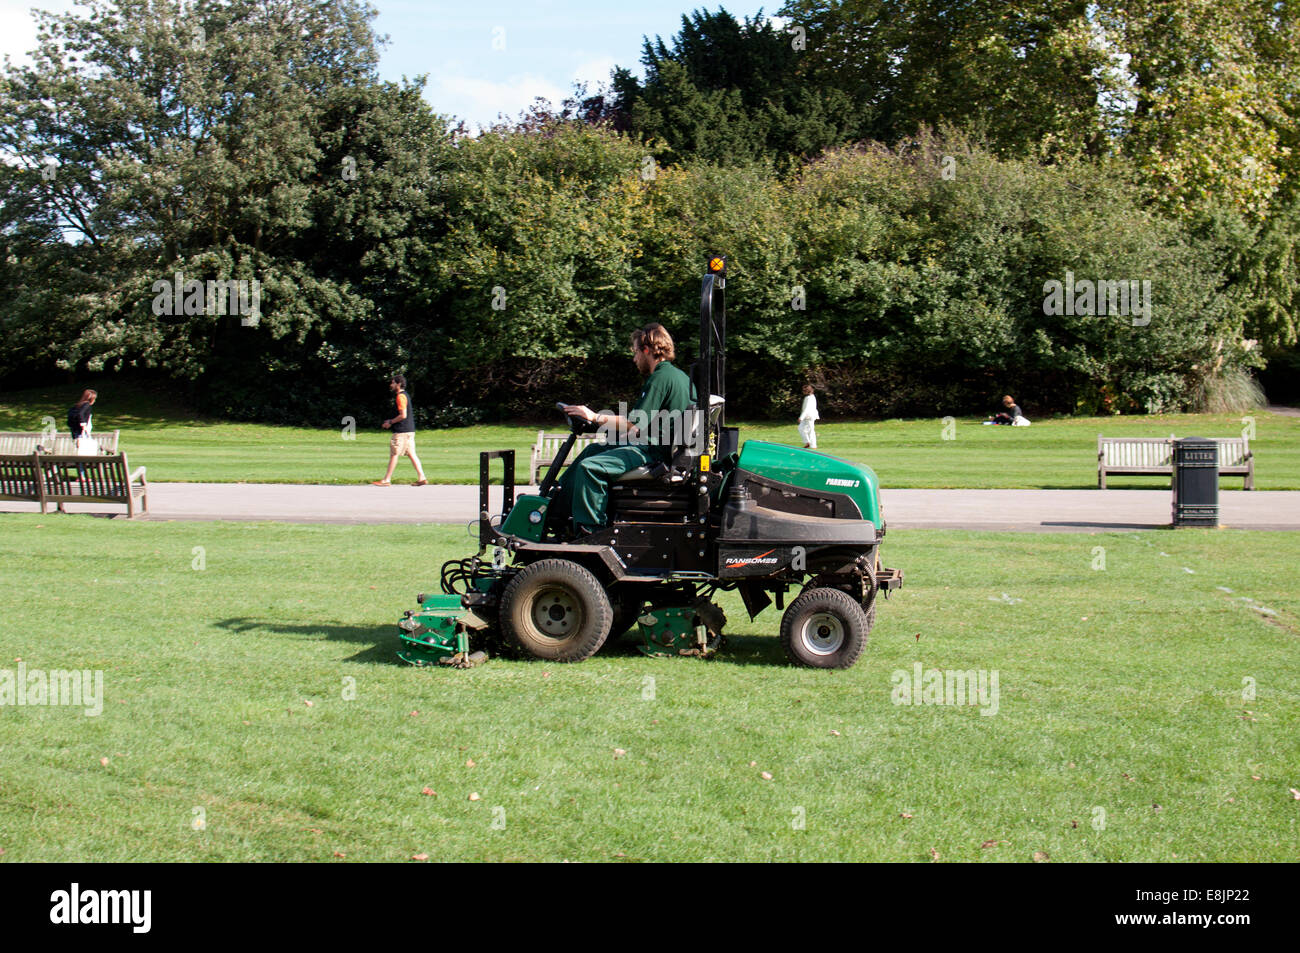 Gardener mowing lawn in Regents Park, London, UK - Stock Image